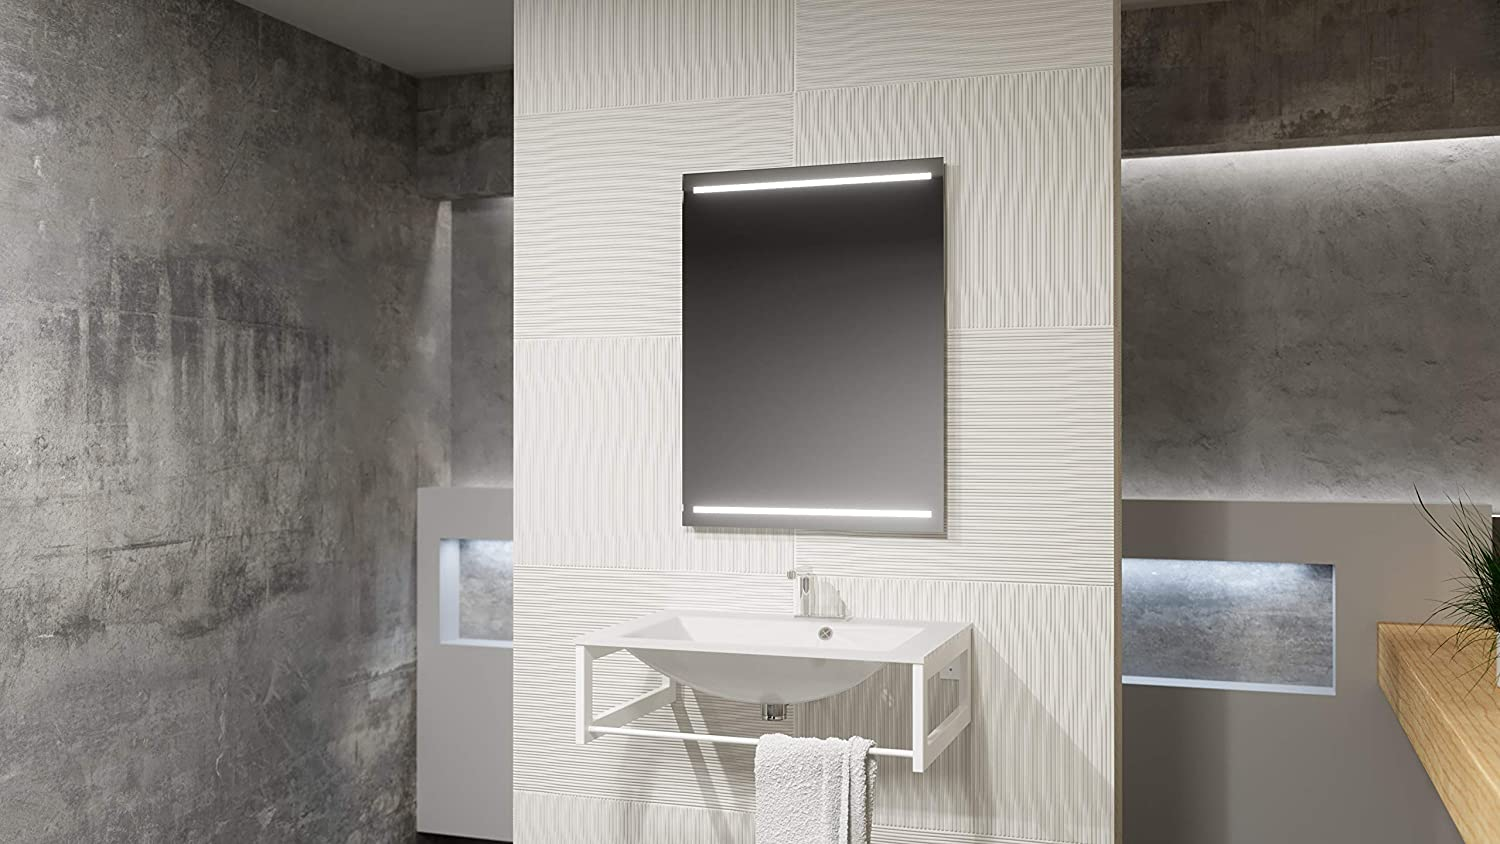 Speculo A1004 1200 x 800 mm Rectangular Illuminated Mirror, with Demister Pad.